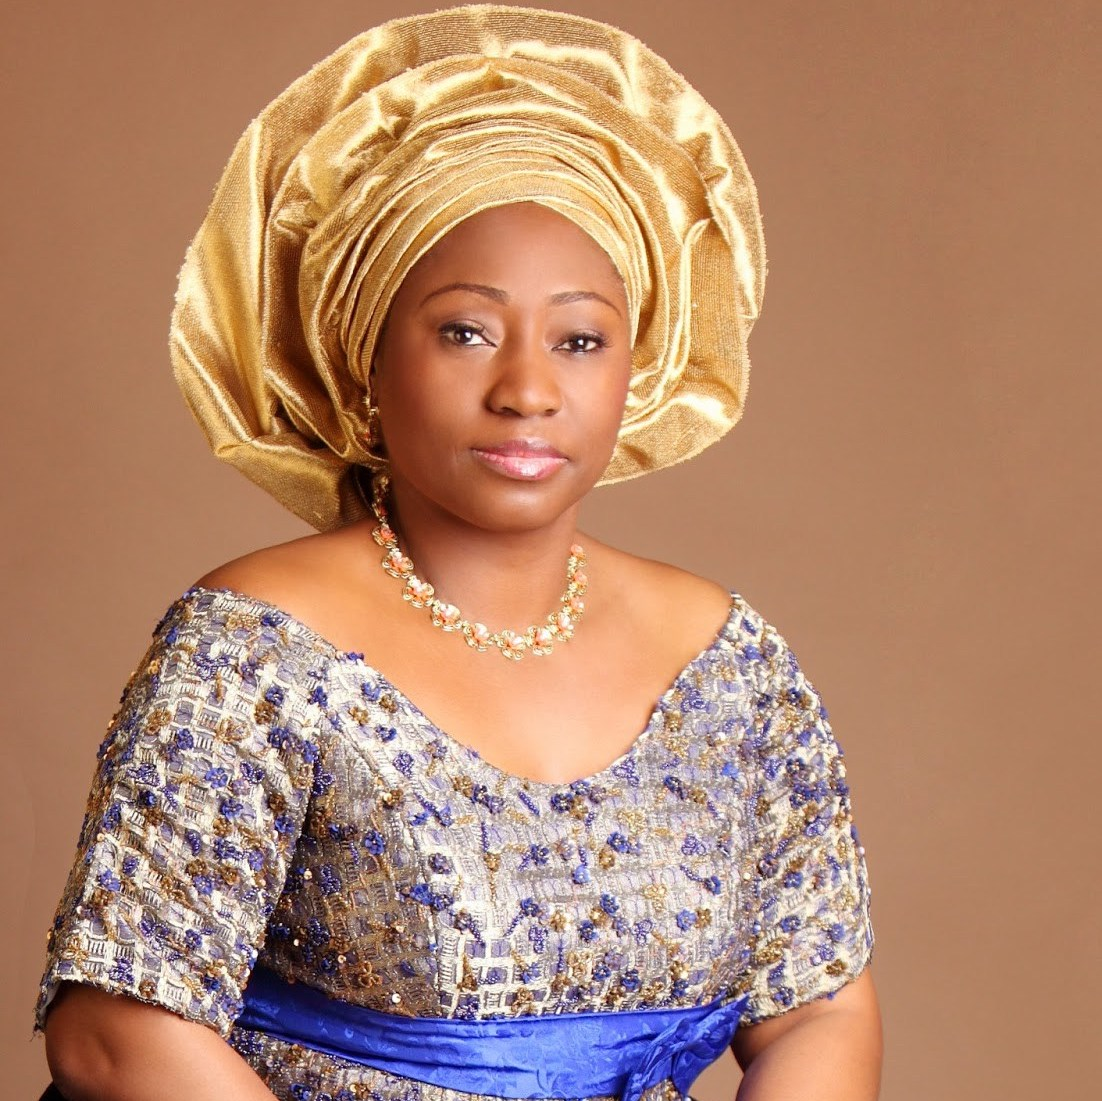 Ekiti First Lady charges group on women rights